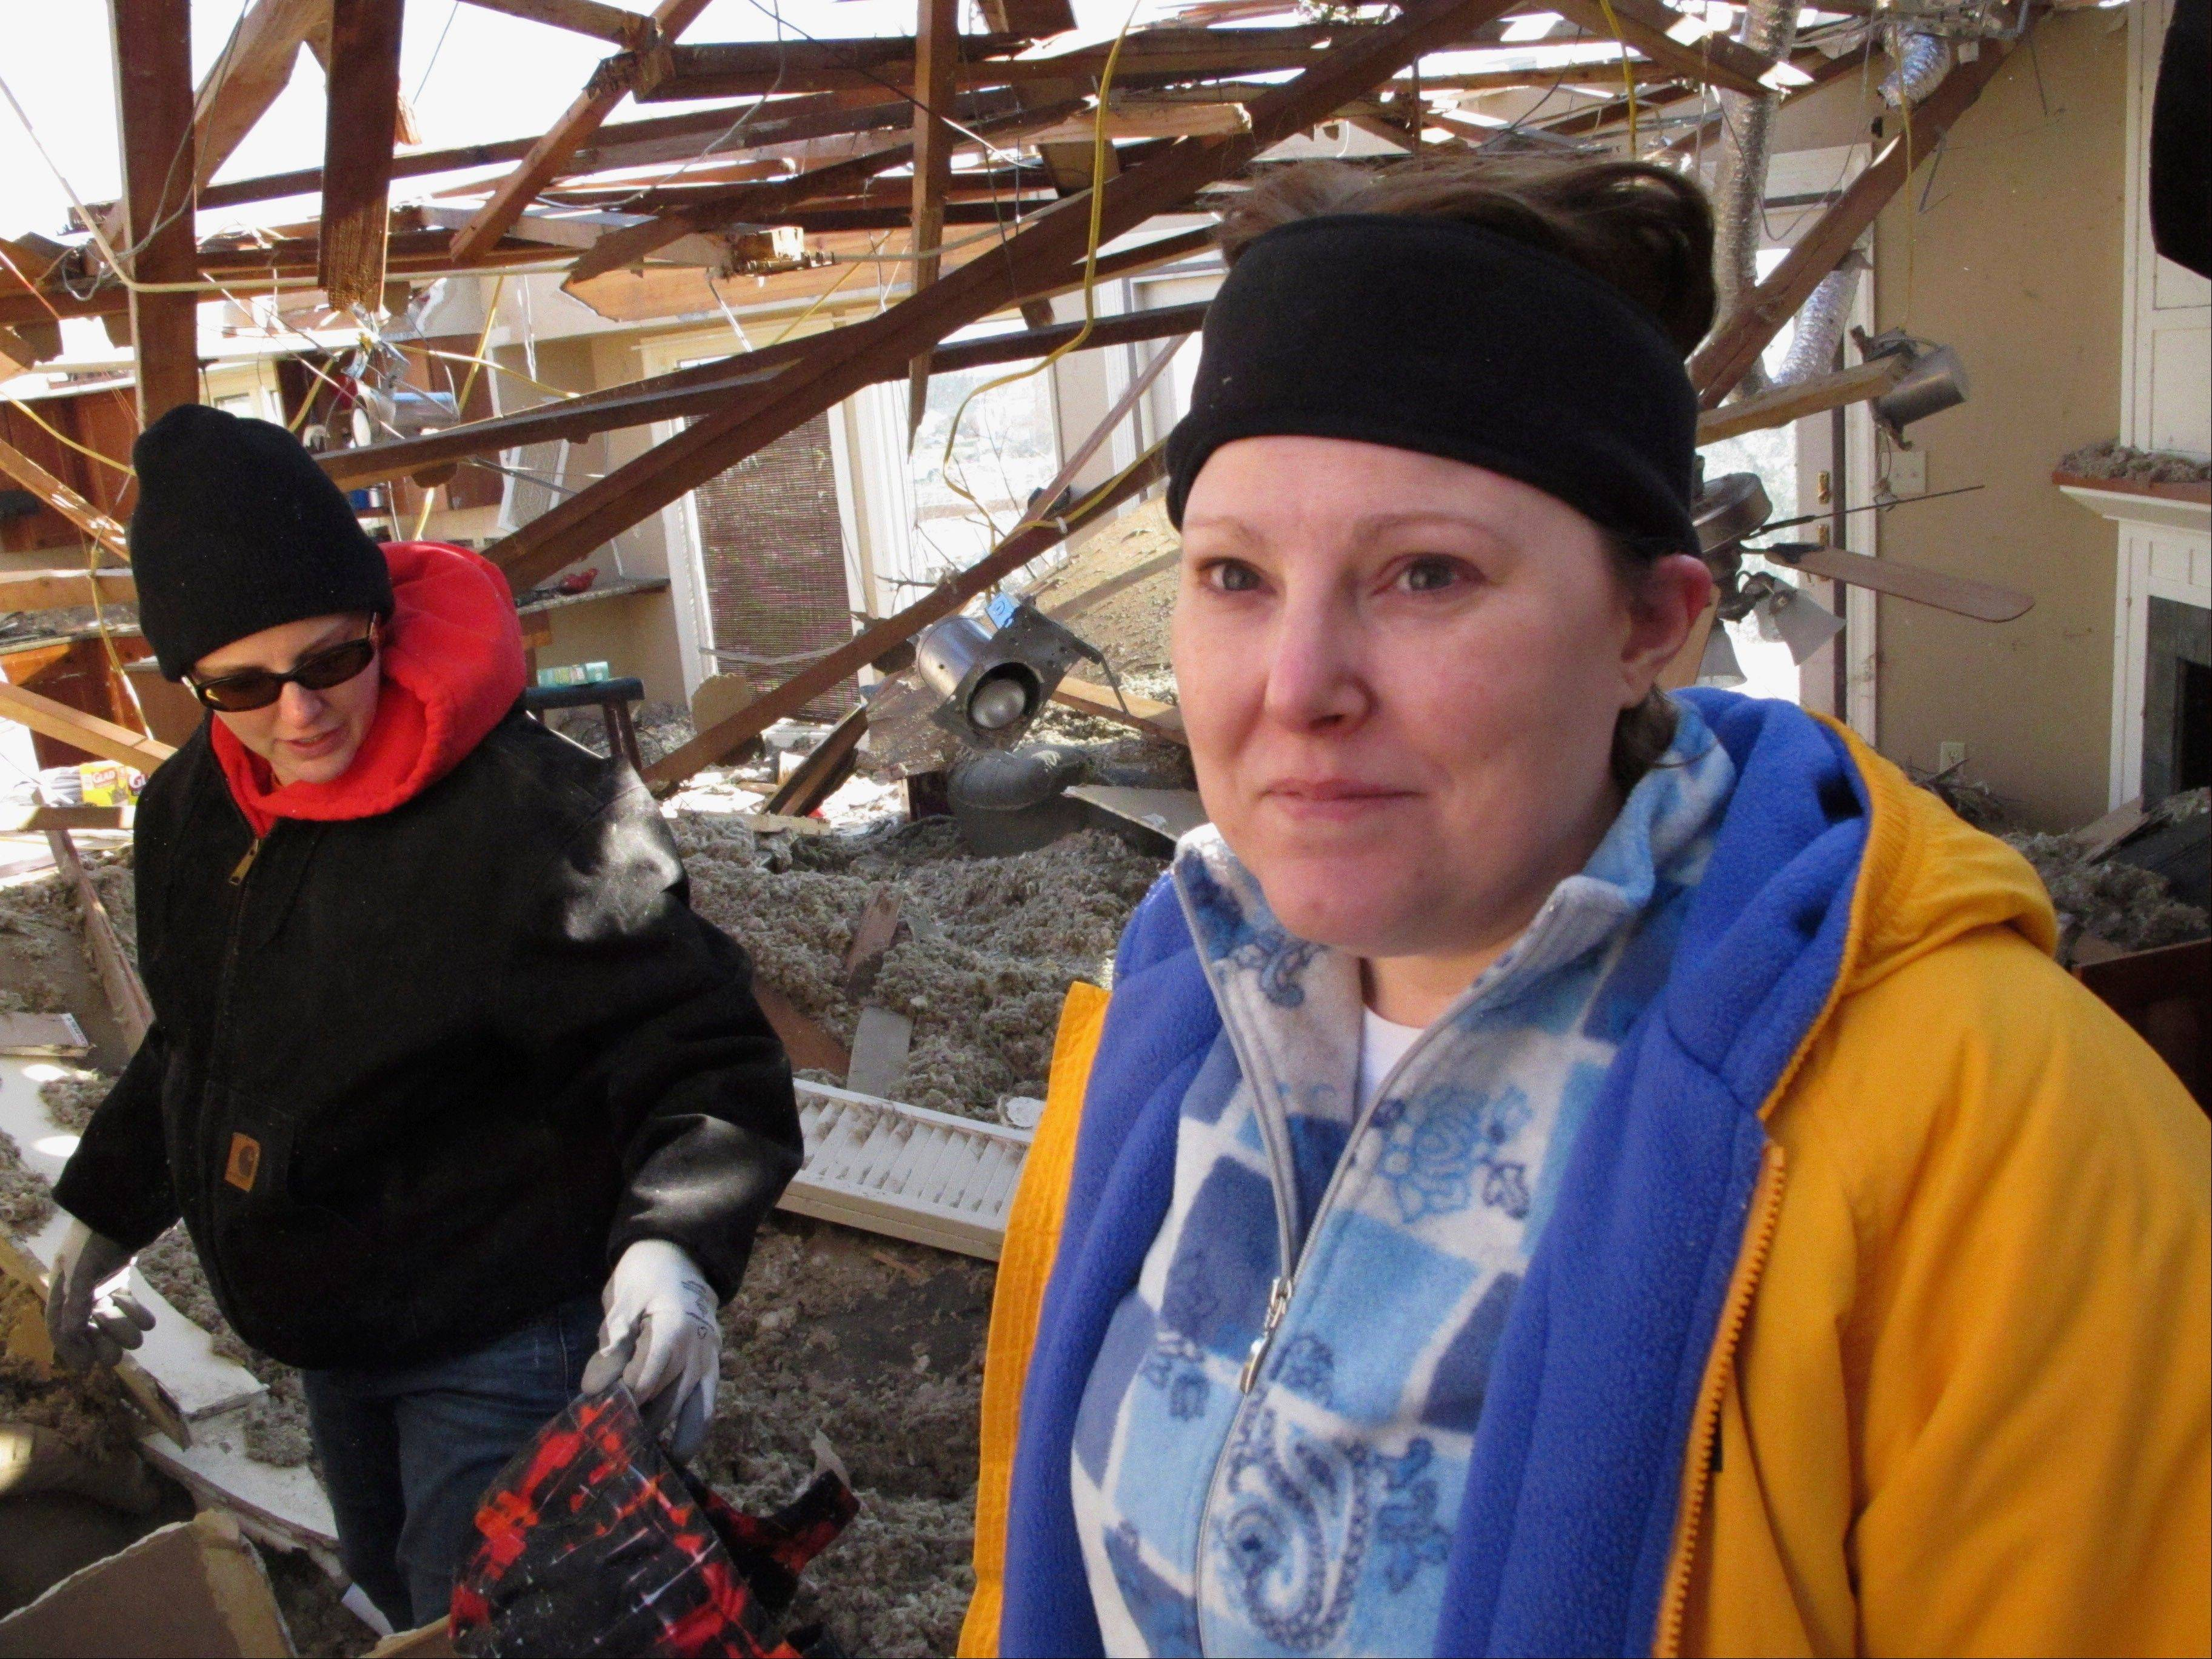 Jessica Bochart, right, works with friends and relatives Monday to dig through the wreckage of her home in Washington, Ill. The home was one of hundreds in the town hit by a tornado on Sunday. Across this Washington neighborhood, homeowners and their friends and families worked quickly in a stiff, cold breeze. Some picked through little more than piles of brick, drywall and lumber. Others, like Bochart, had sections of their houses still standing.